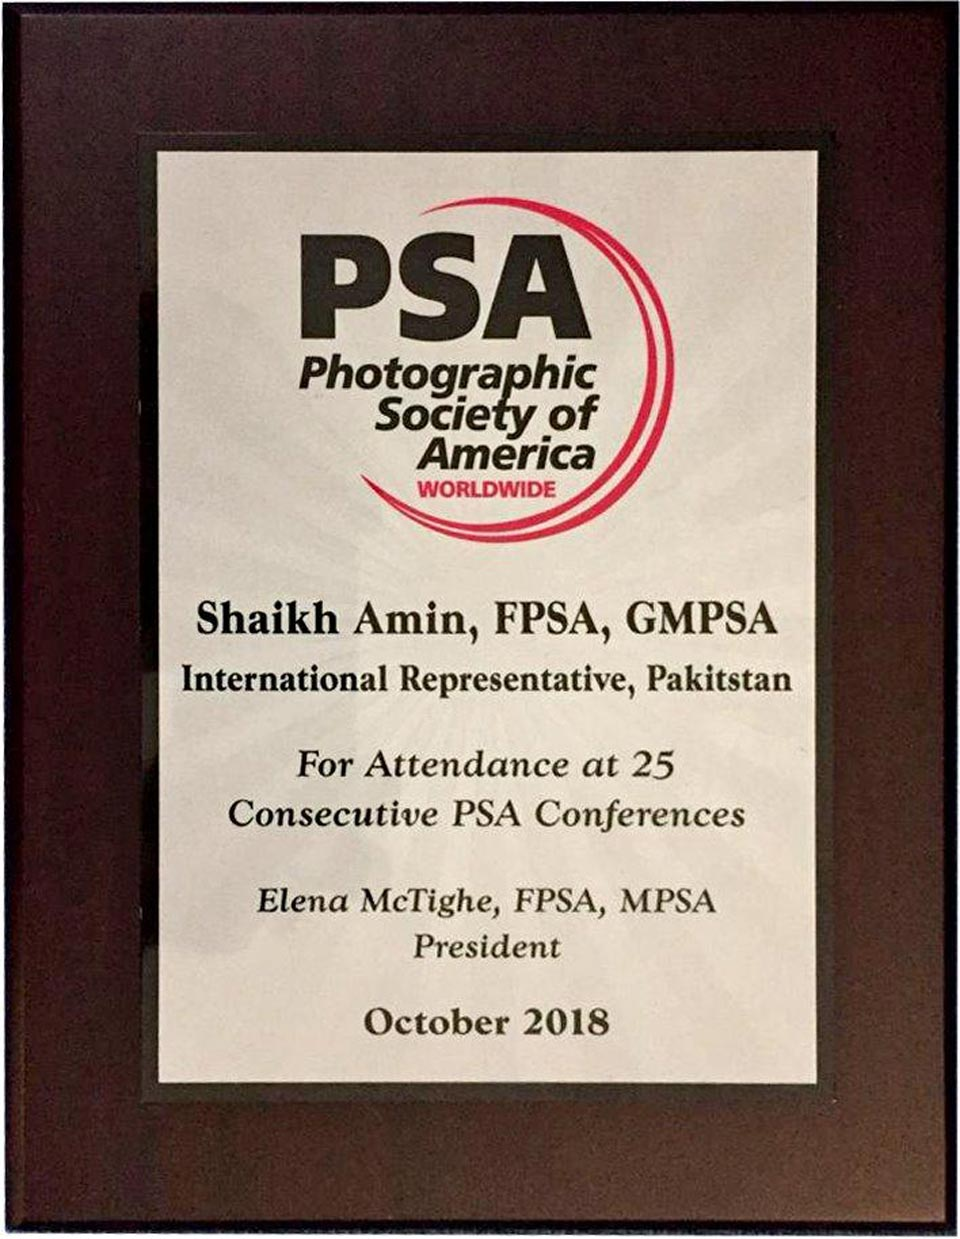 Shaikh Amin receives award for attendance at 25 consecutive Photographic Society of America conferences.